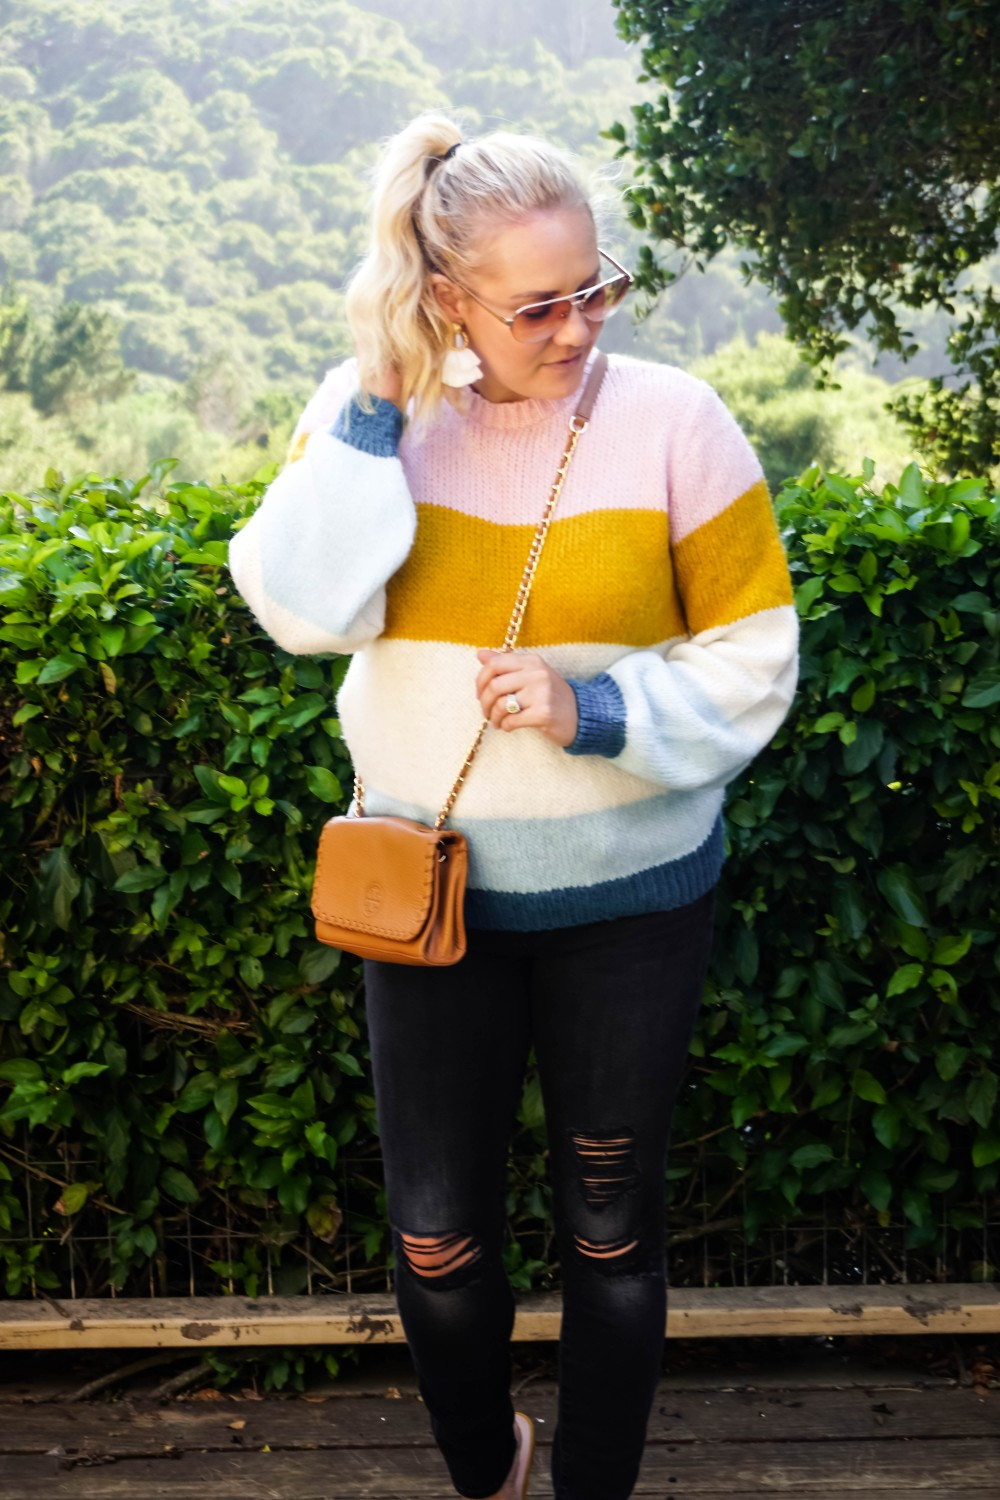 Colorblock Sweaters, Topshop Colorblock Knit Sweater, Fall Fashion, Outfit Inspiration, Tory Burch Crossbody, Steve Madden Slides, Have Need Want